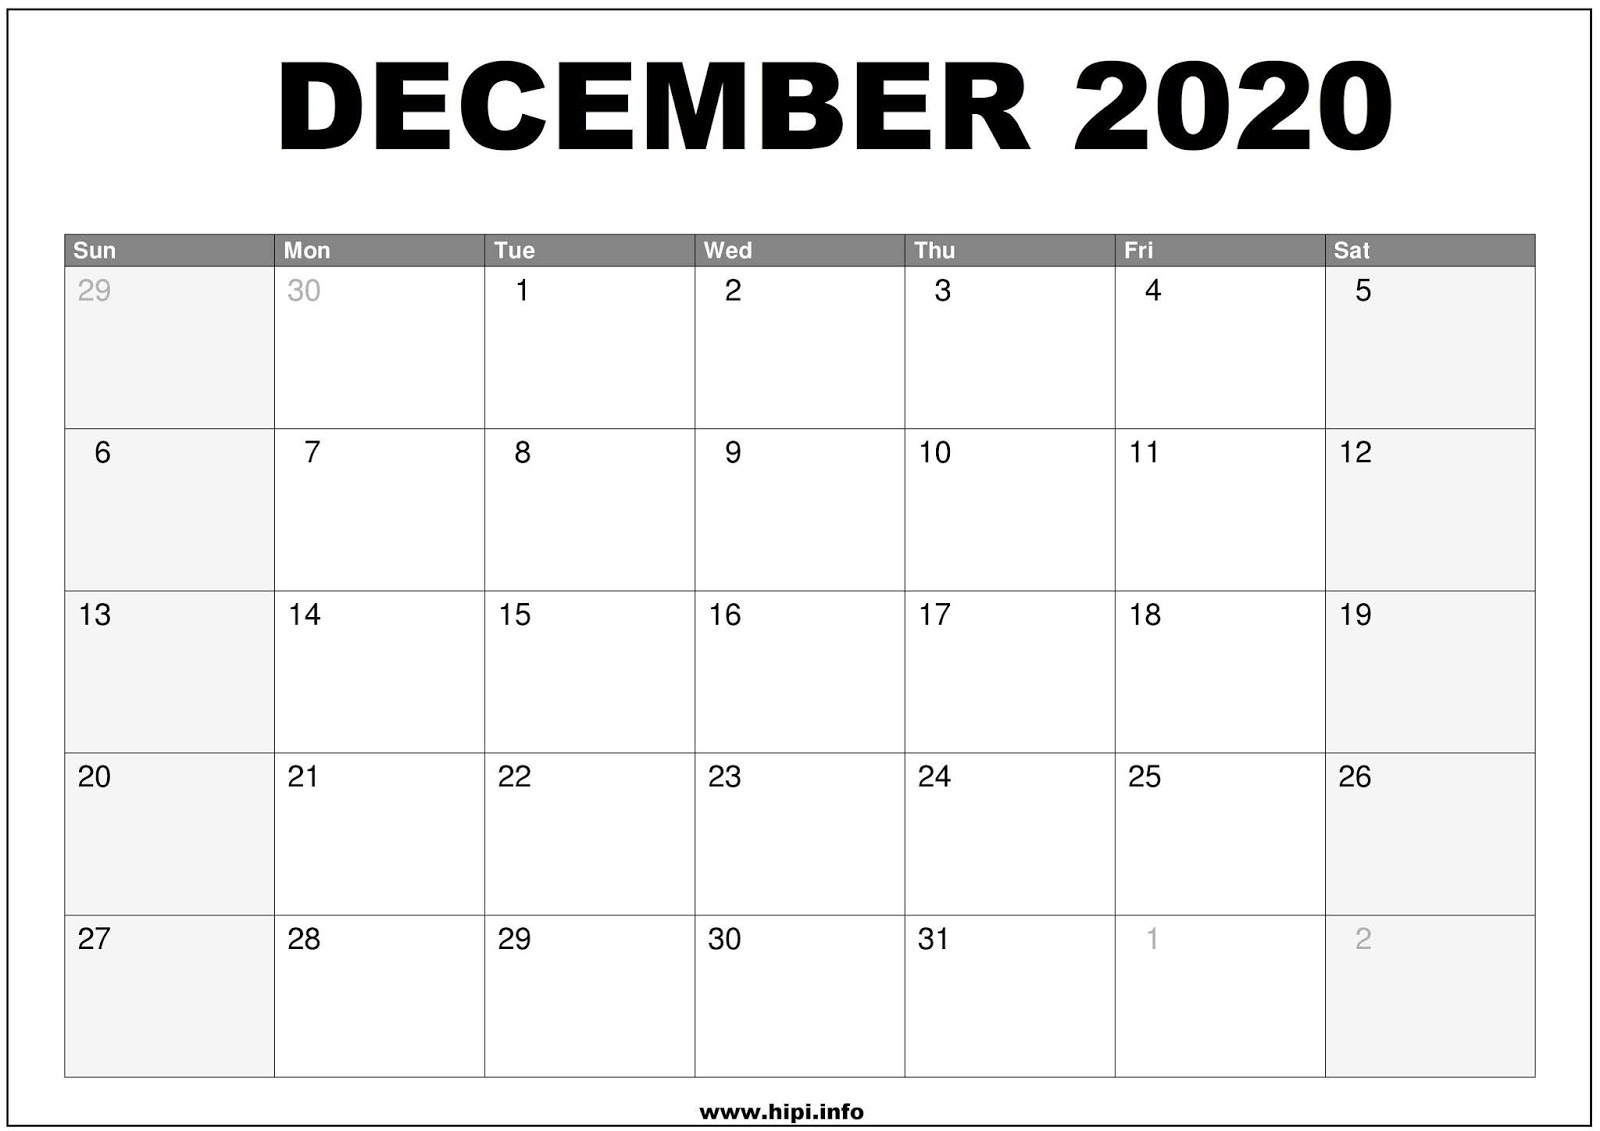 Calendar December 2020.Twitter Headers Facebook Covers Wallpapers Calendars December